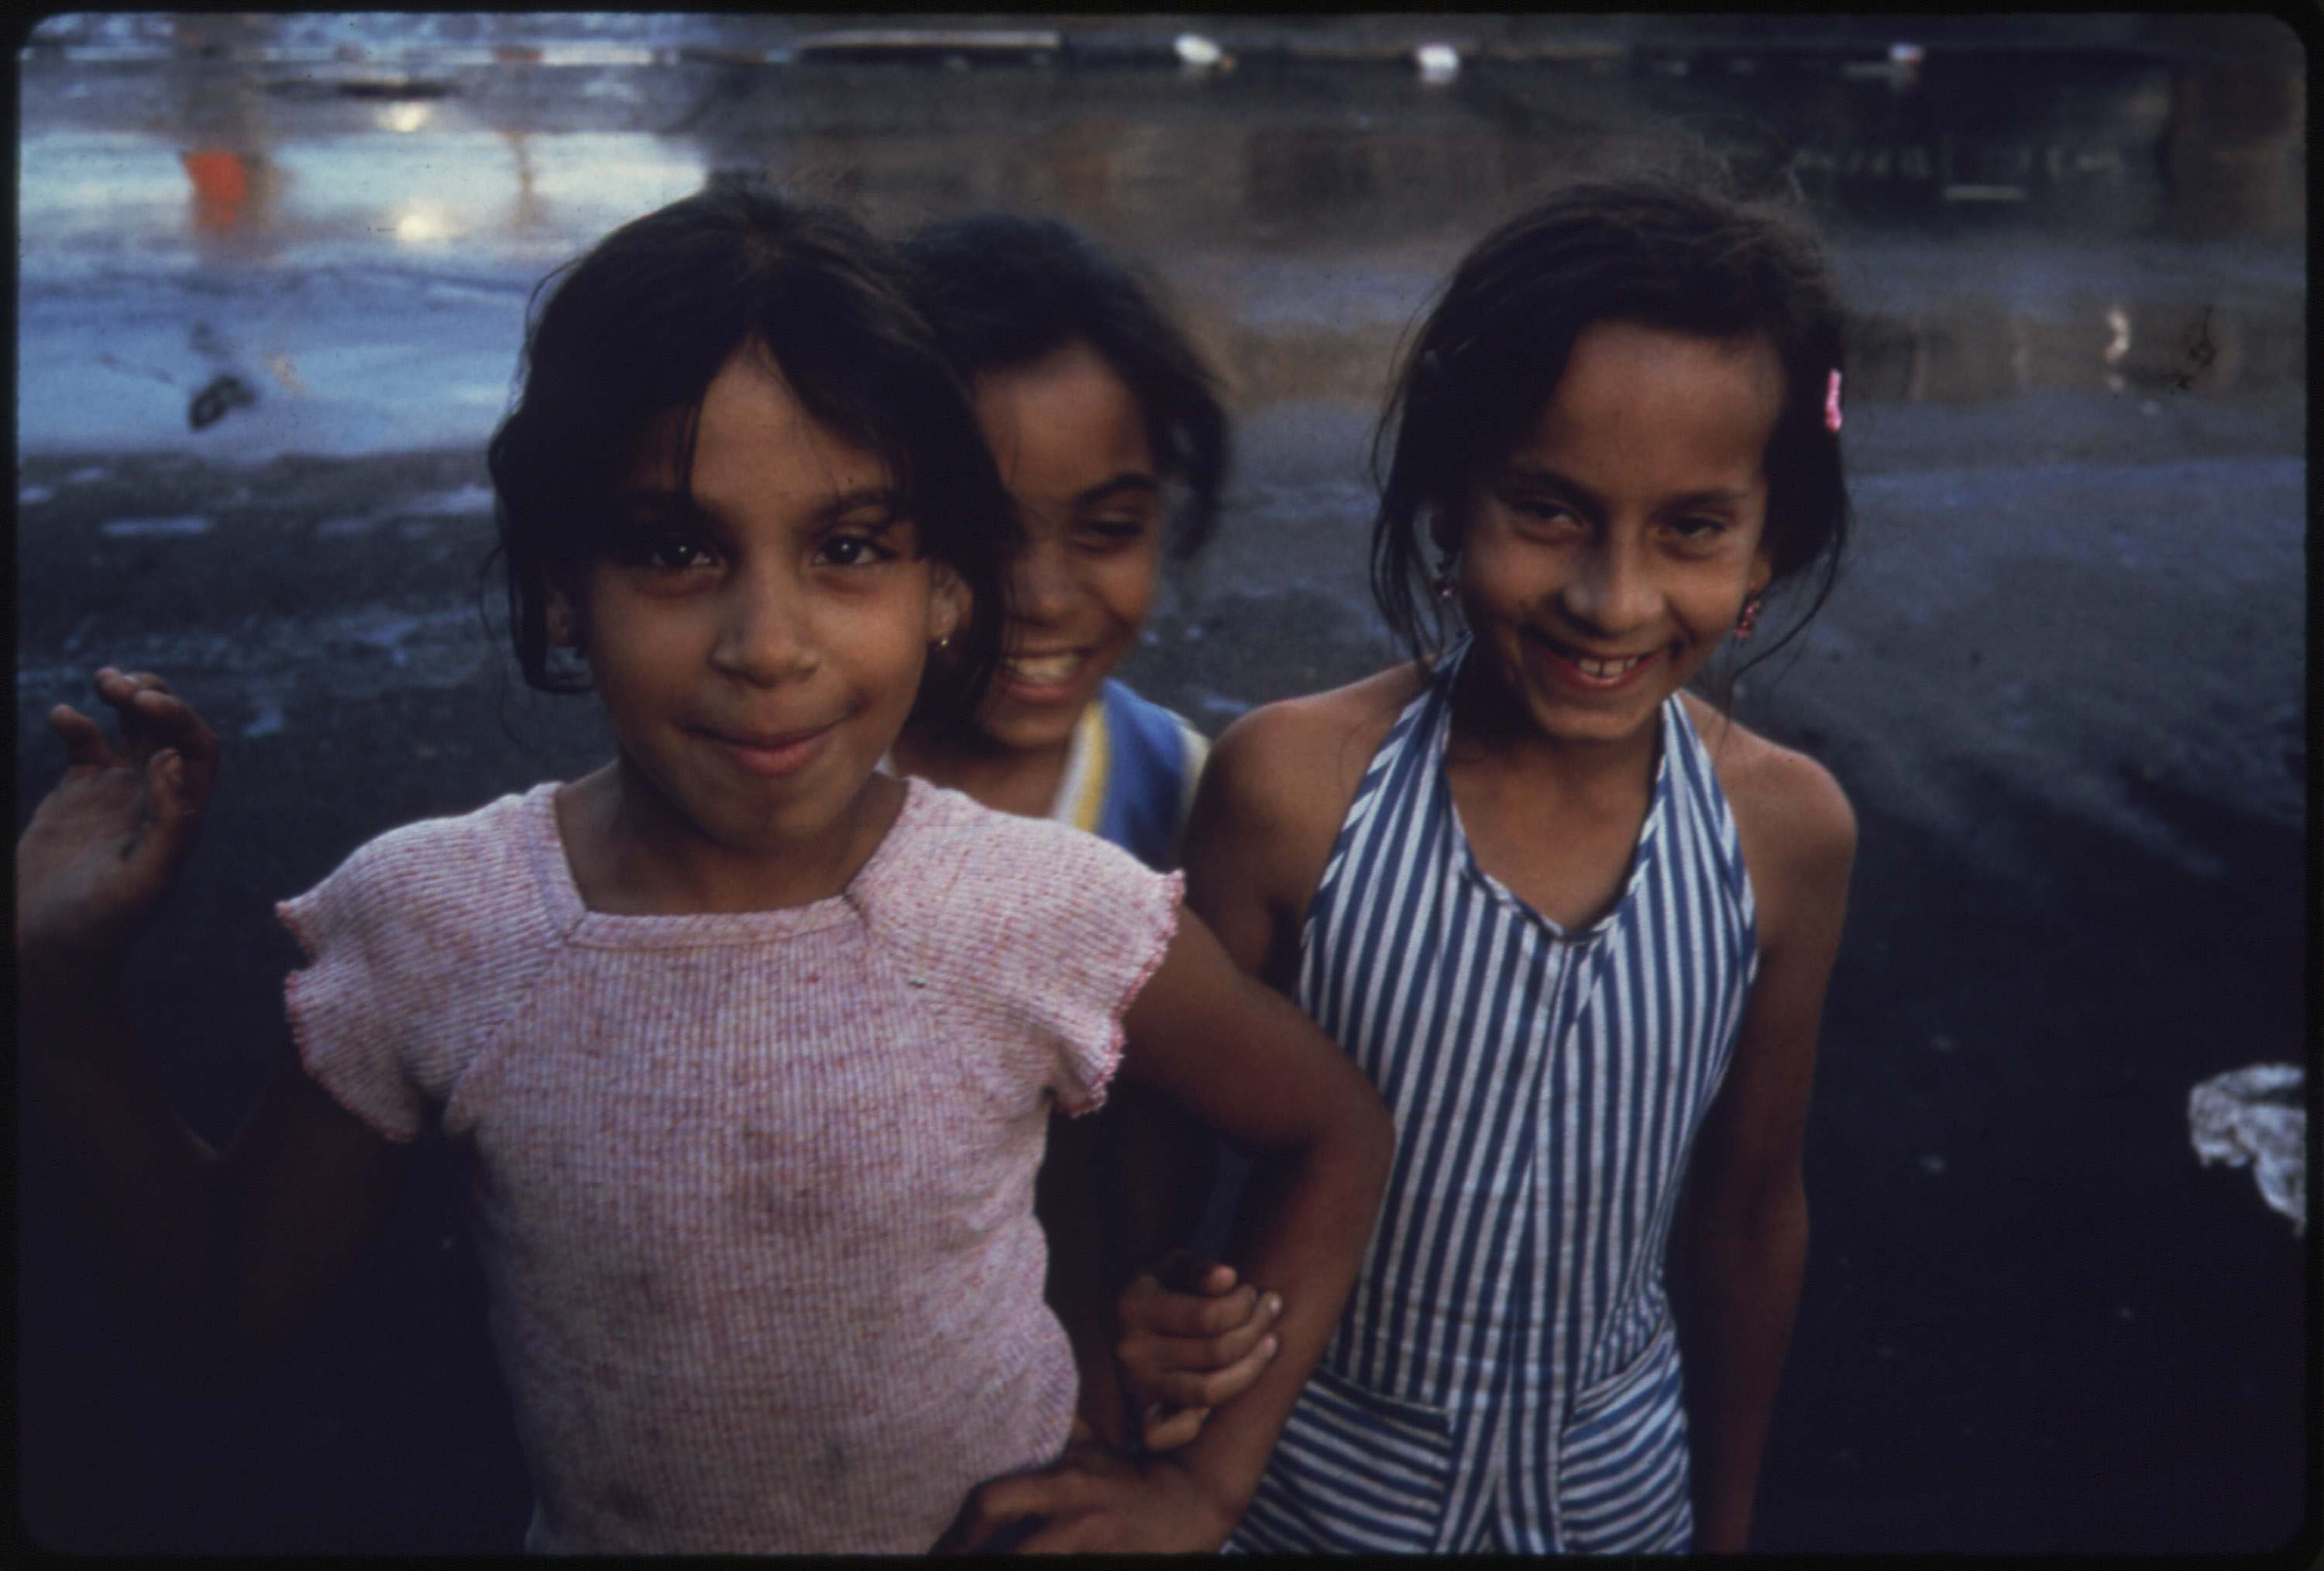 Three young girls in Brooklyn, July 1974.Documerica: Danny Lyon's Photos of New York City in the Summer of 1974